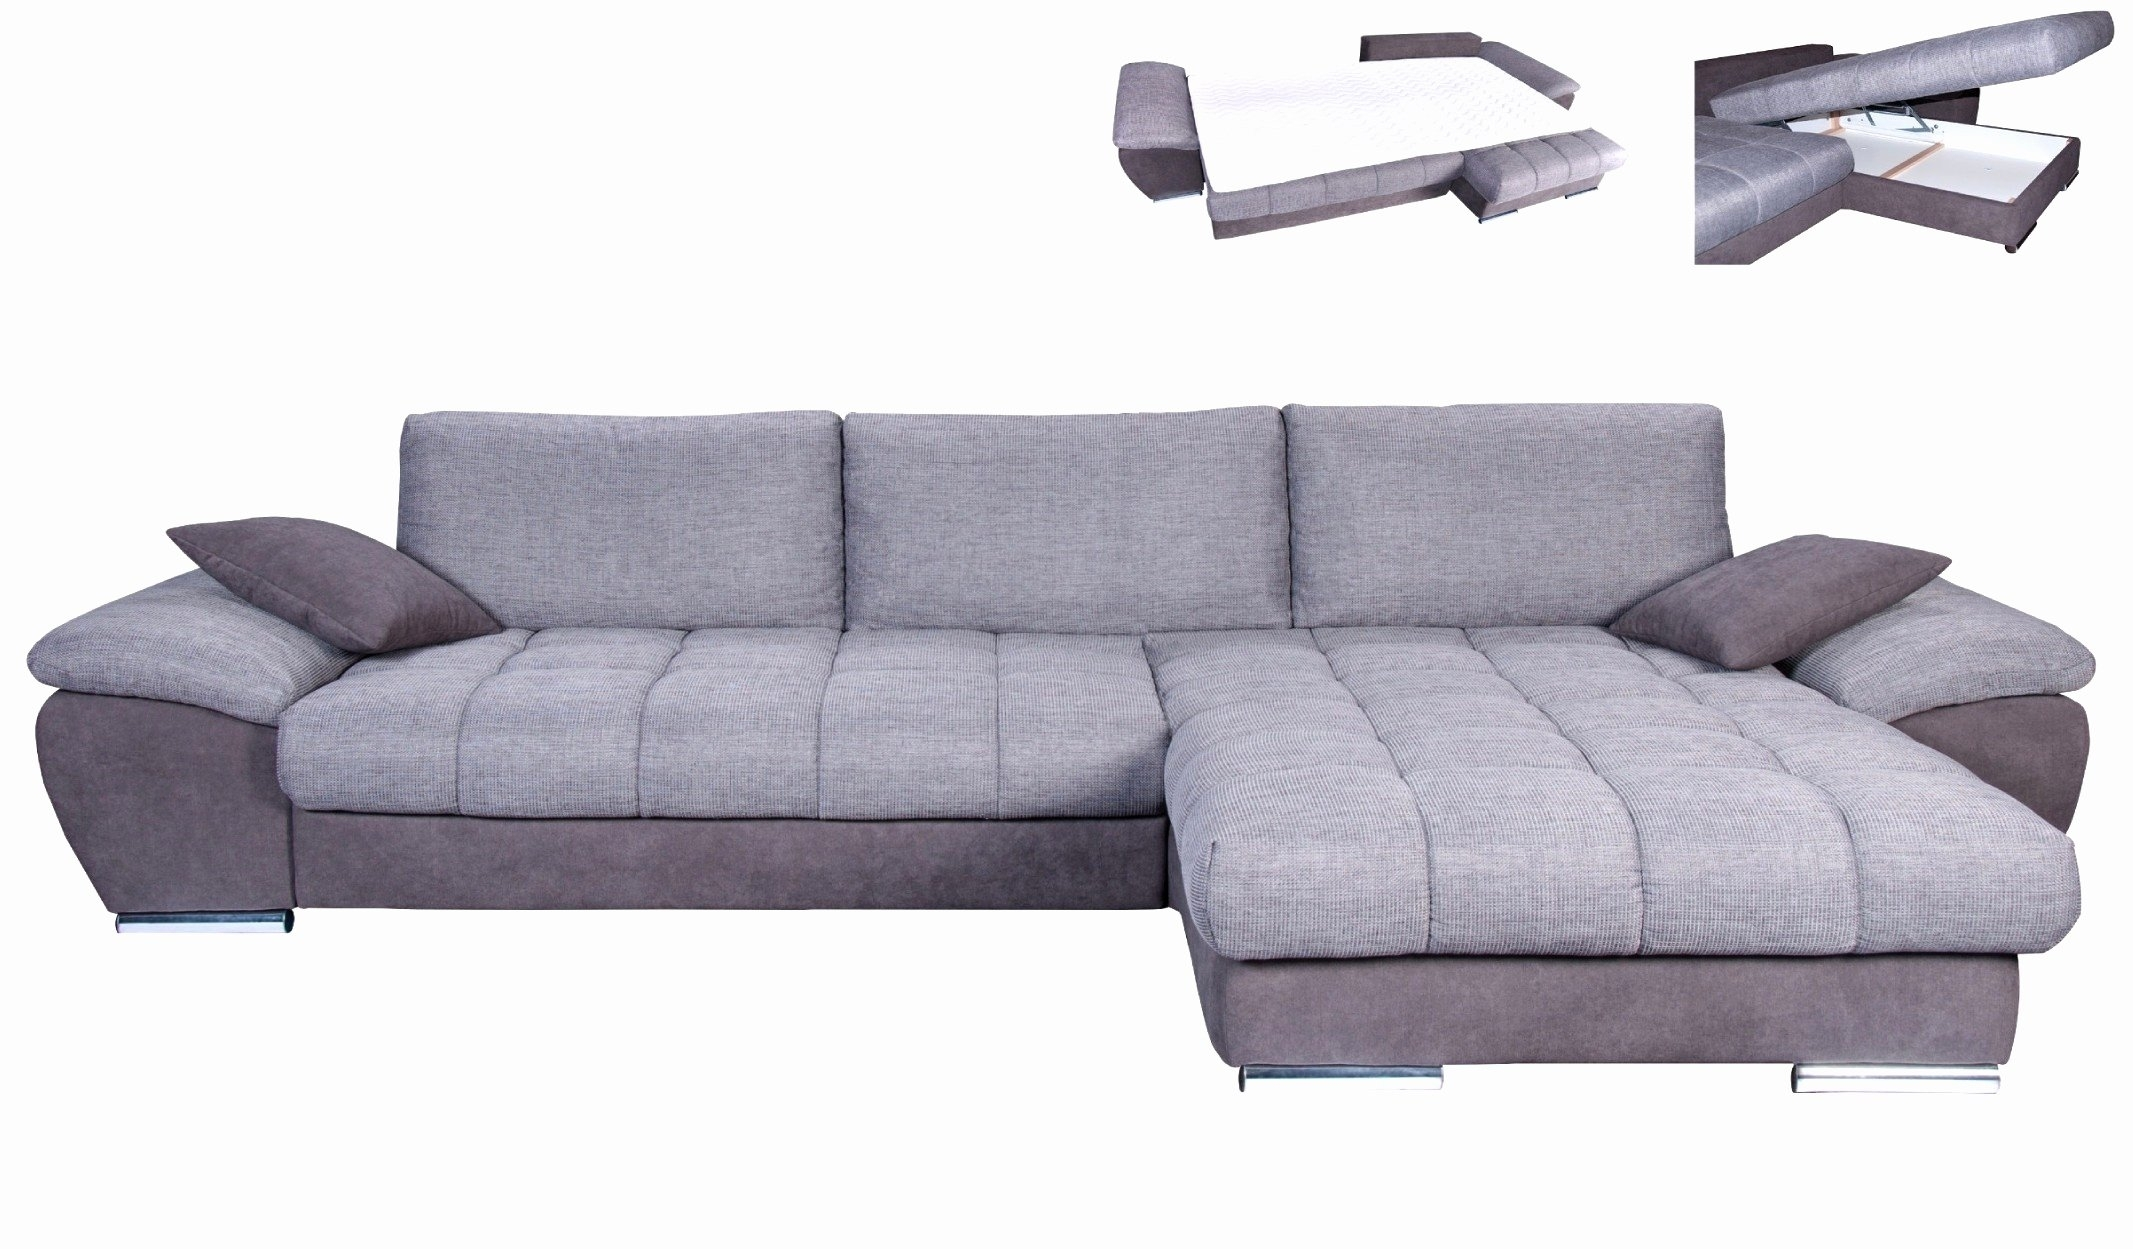 Simple 25 2 Piece Sectionals With Chaise Awesome | Russiandesignshow Intended For Aquarius Dark Grey 2 Piece Sectionals With Laf Chaise (View 23 of 25)